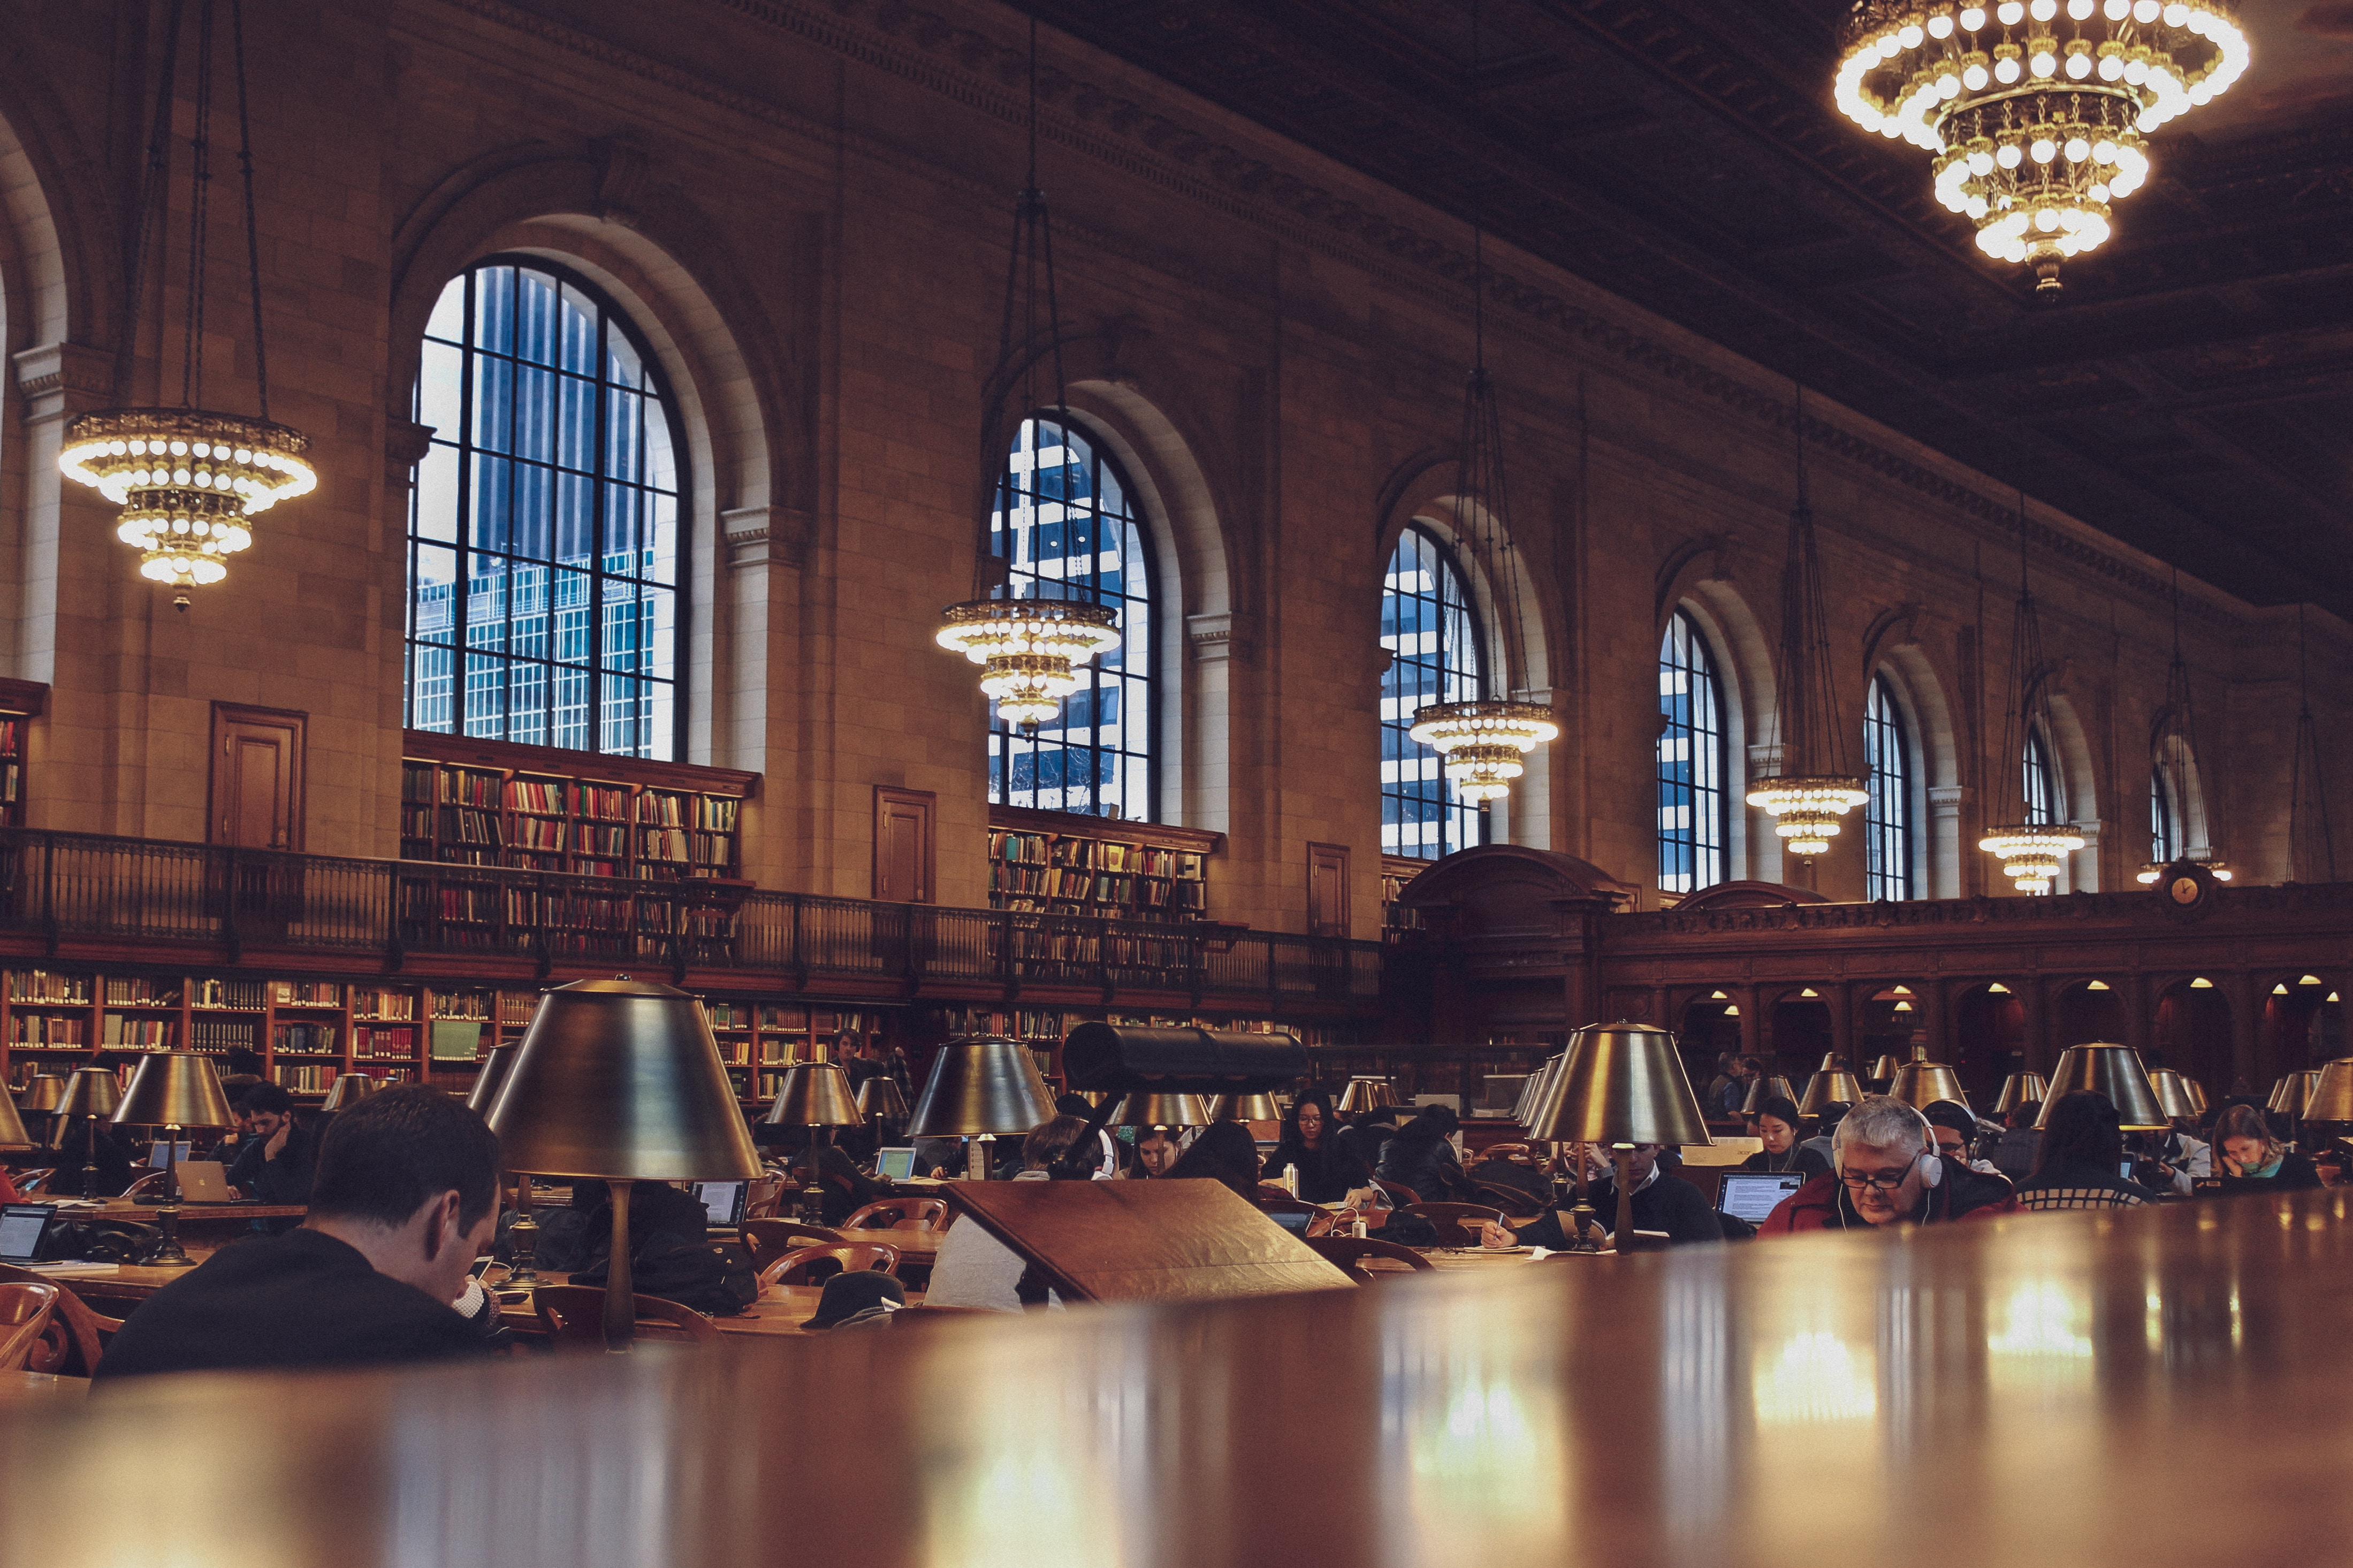 Photo of People in the Library